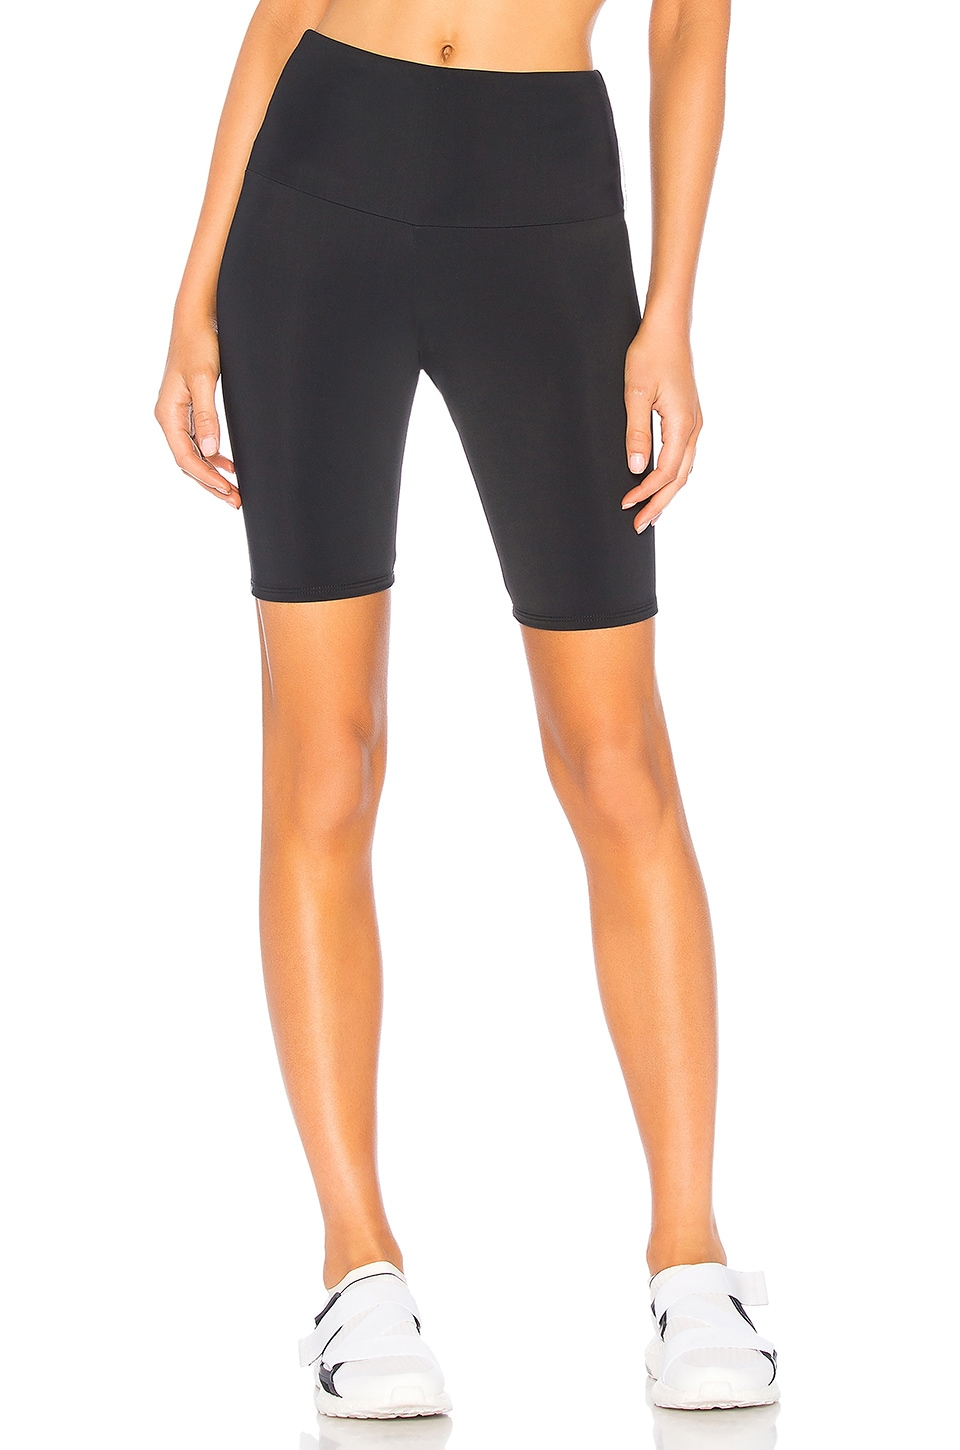 High Rise Bike Short             onzie                                                                                                       CA$ 72.96 7